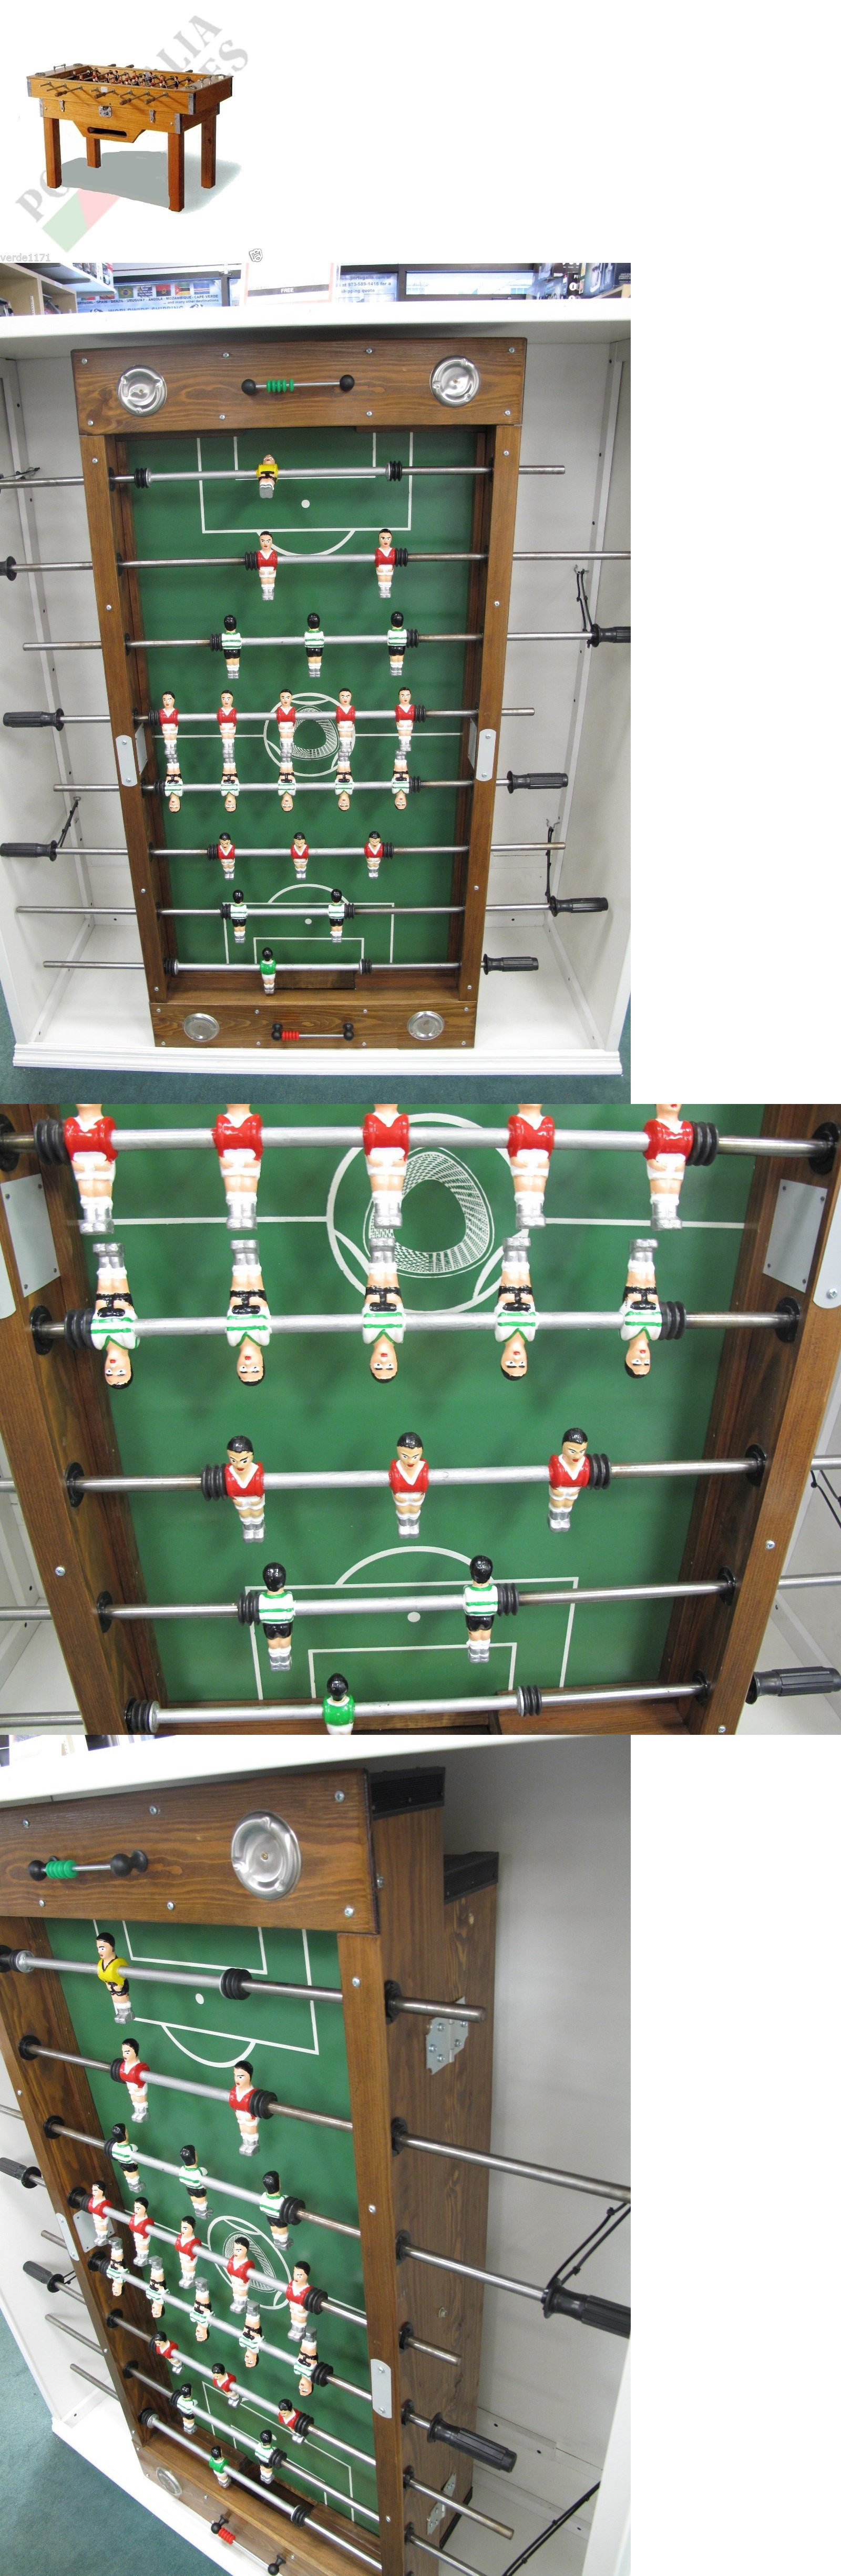 Foosball 36276: Portuguese Commercial Foosball Table Matraquilhos Made In  Portugal Soccer Game BUY IT NOW